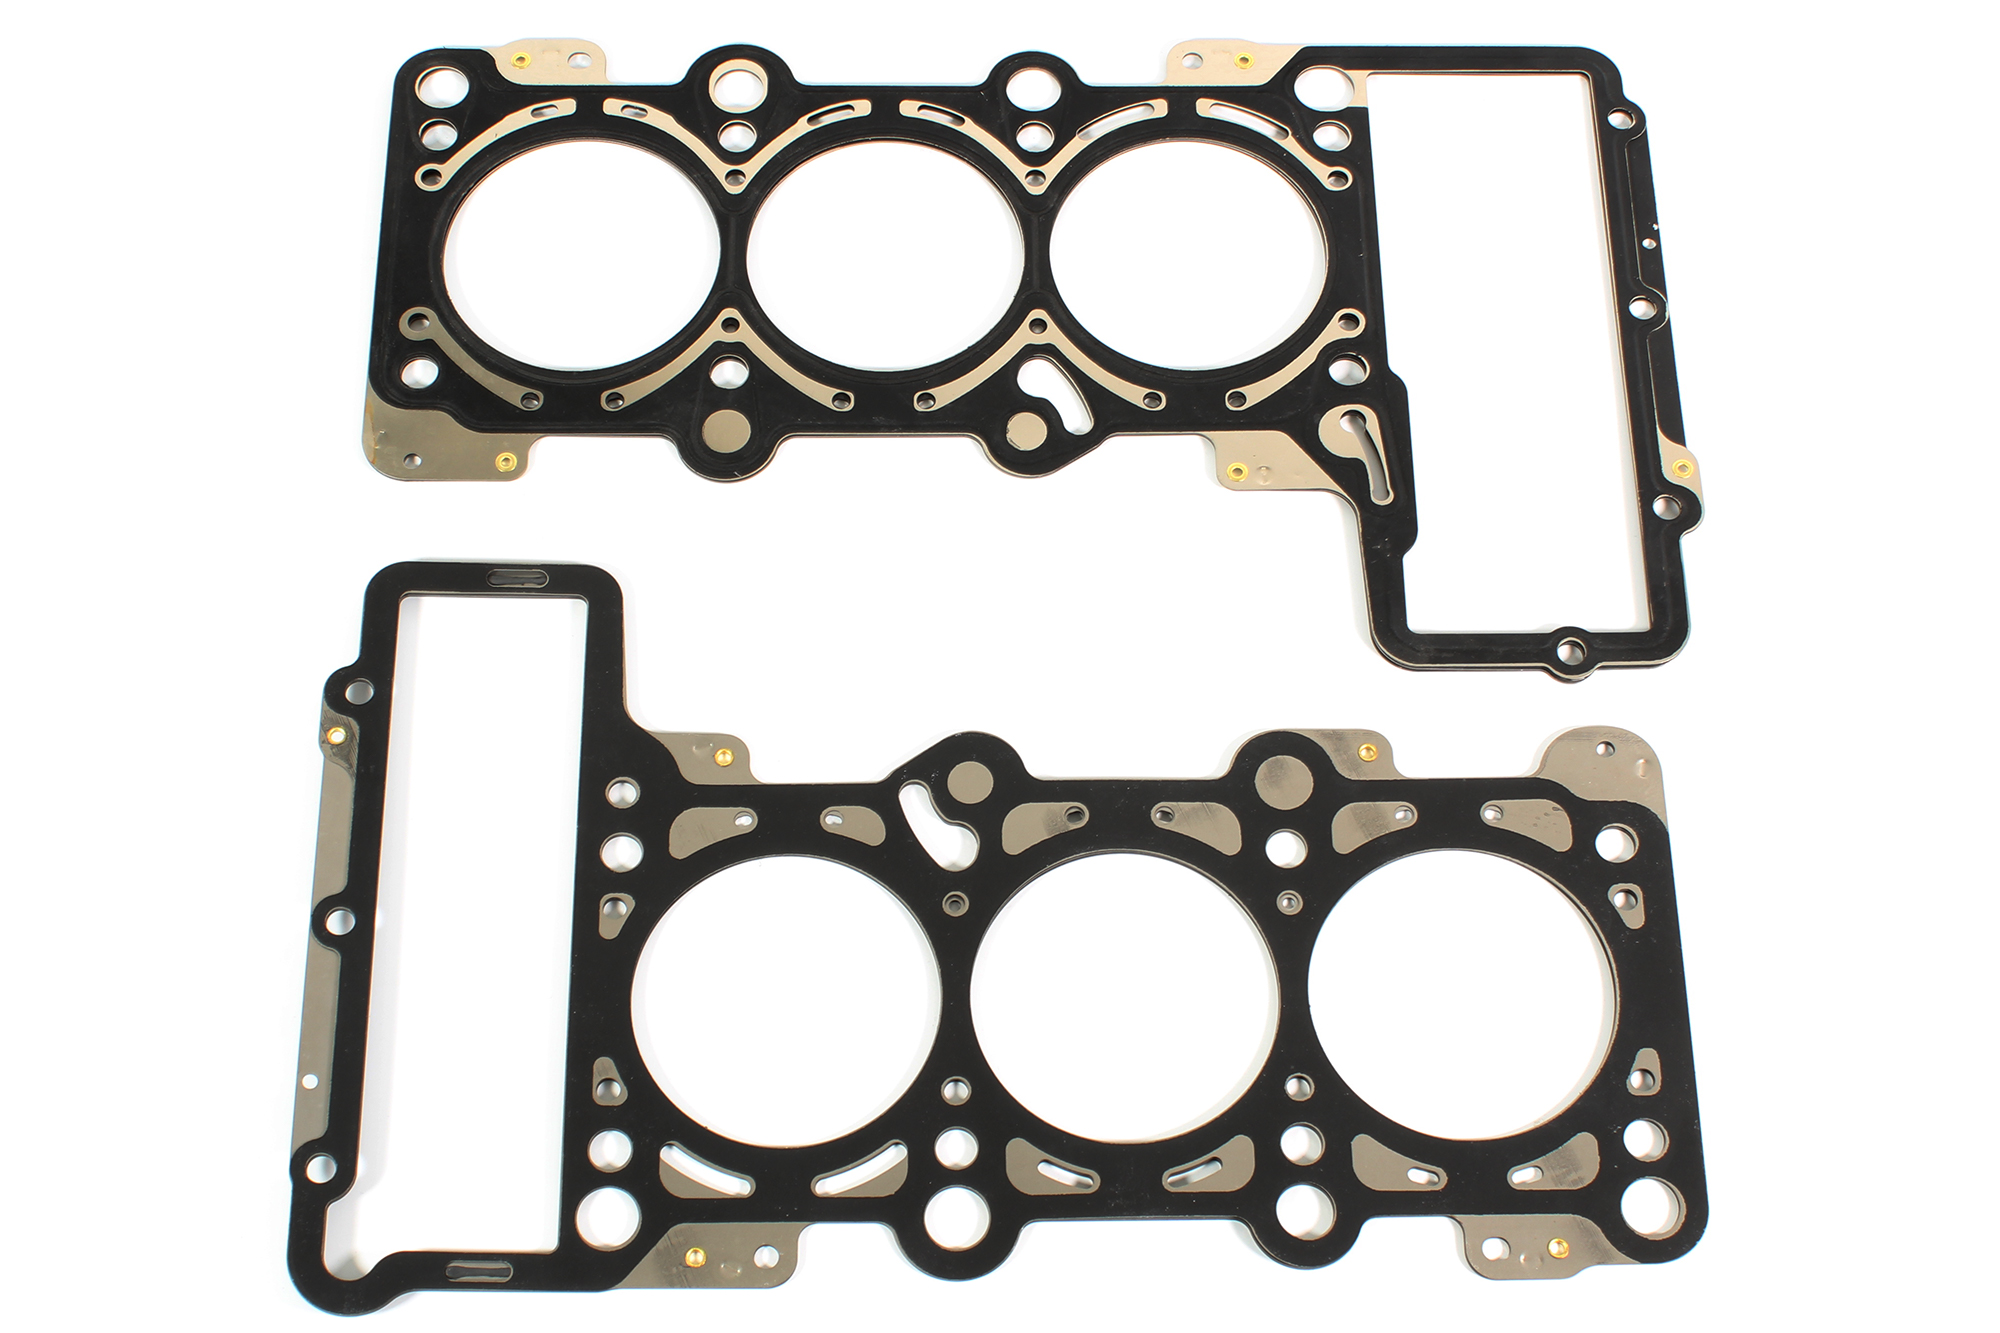 Seal Cylinder head GASKETS-Audi A6 C6 2.4 V6 BDW 06E103148P 06E103149P NEW